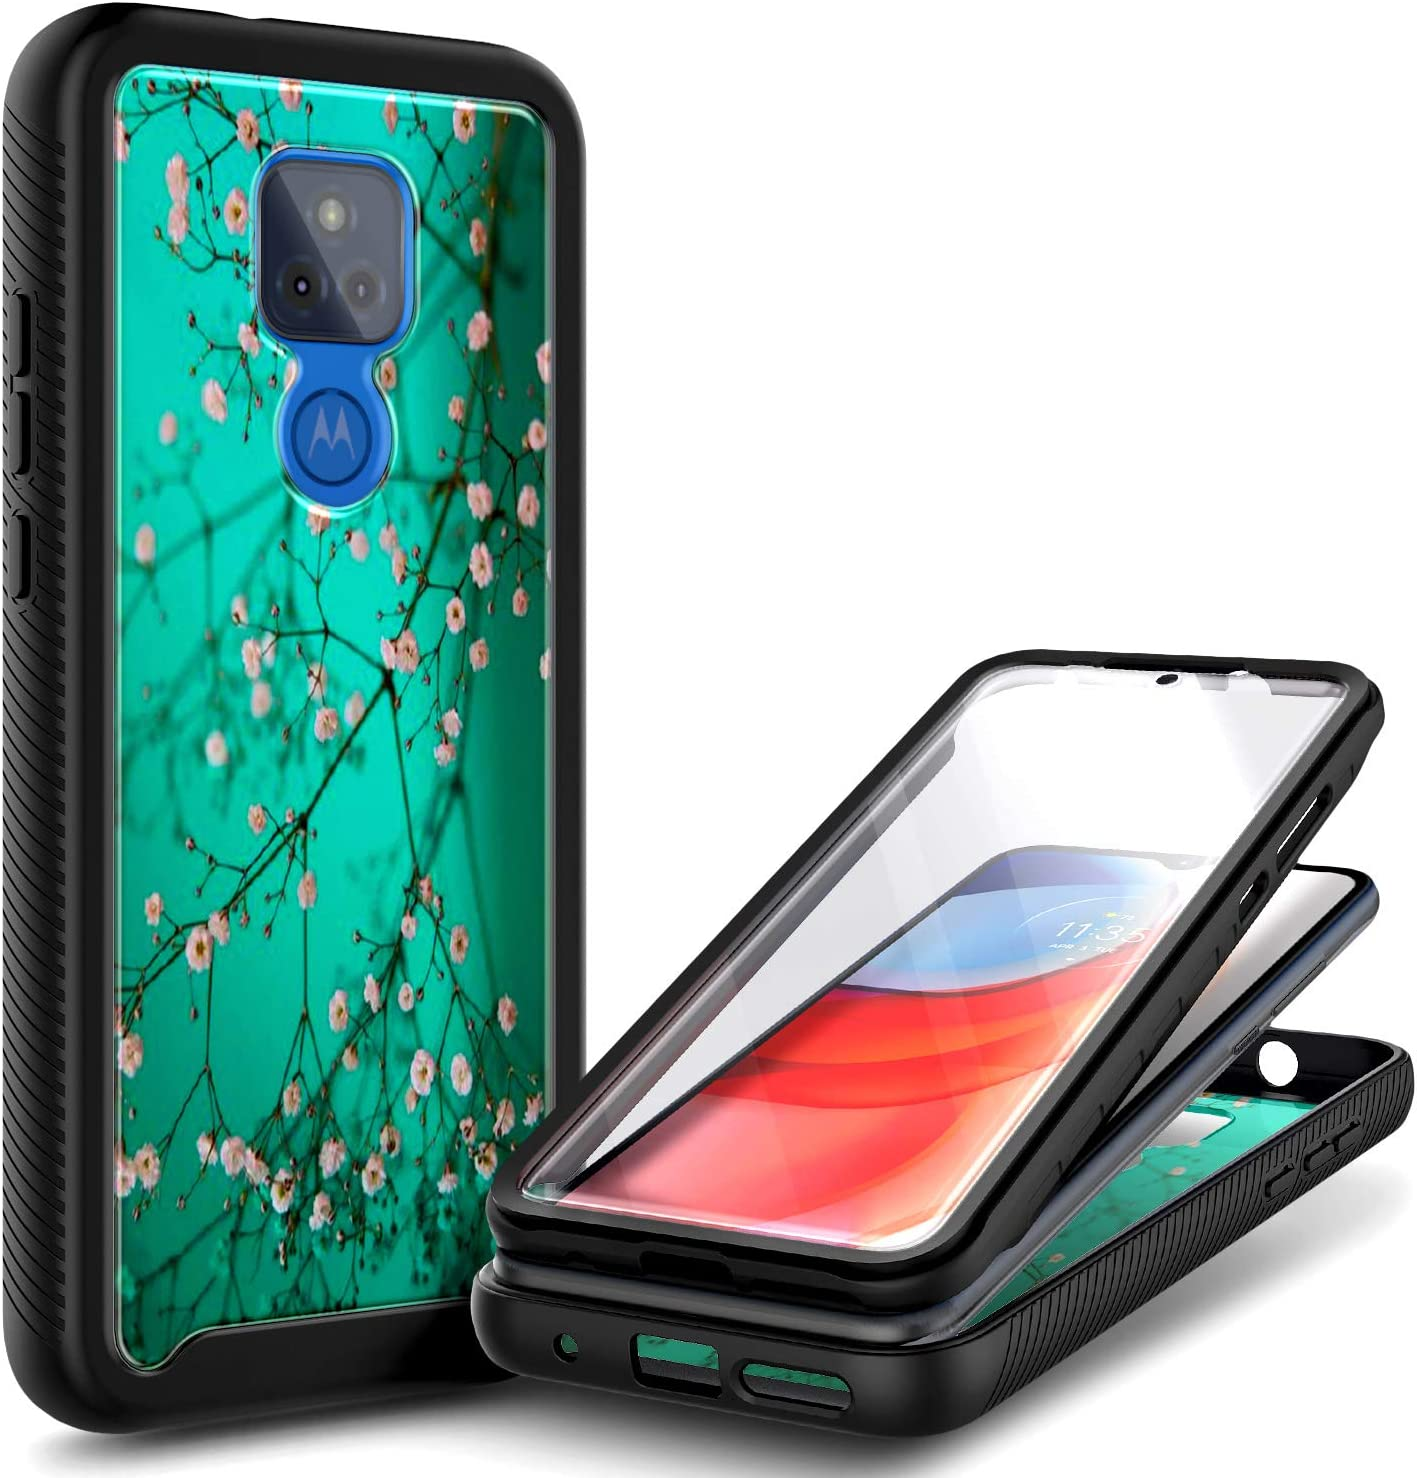 NZND Max 62% OFF Moto G Play 2021 Case Screen Built-in Protector depot Ful with